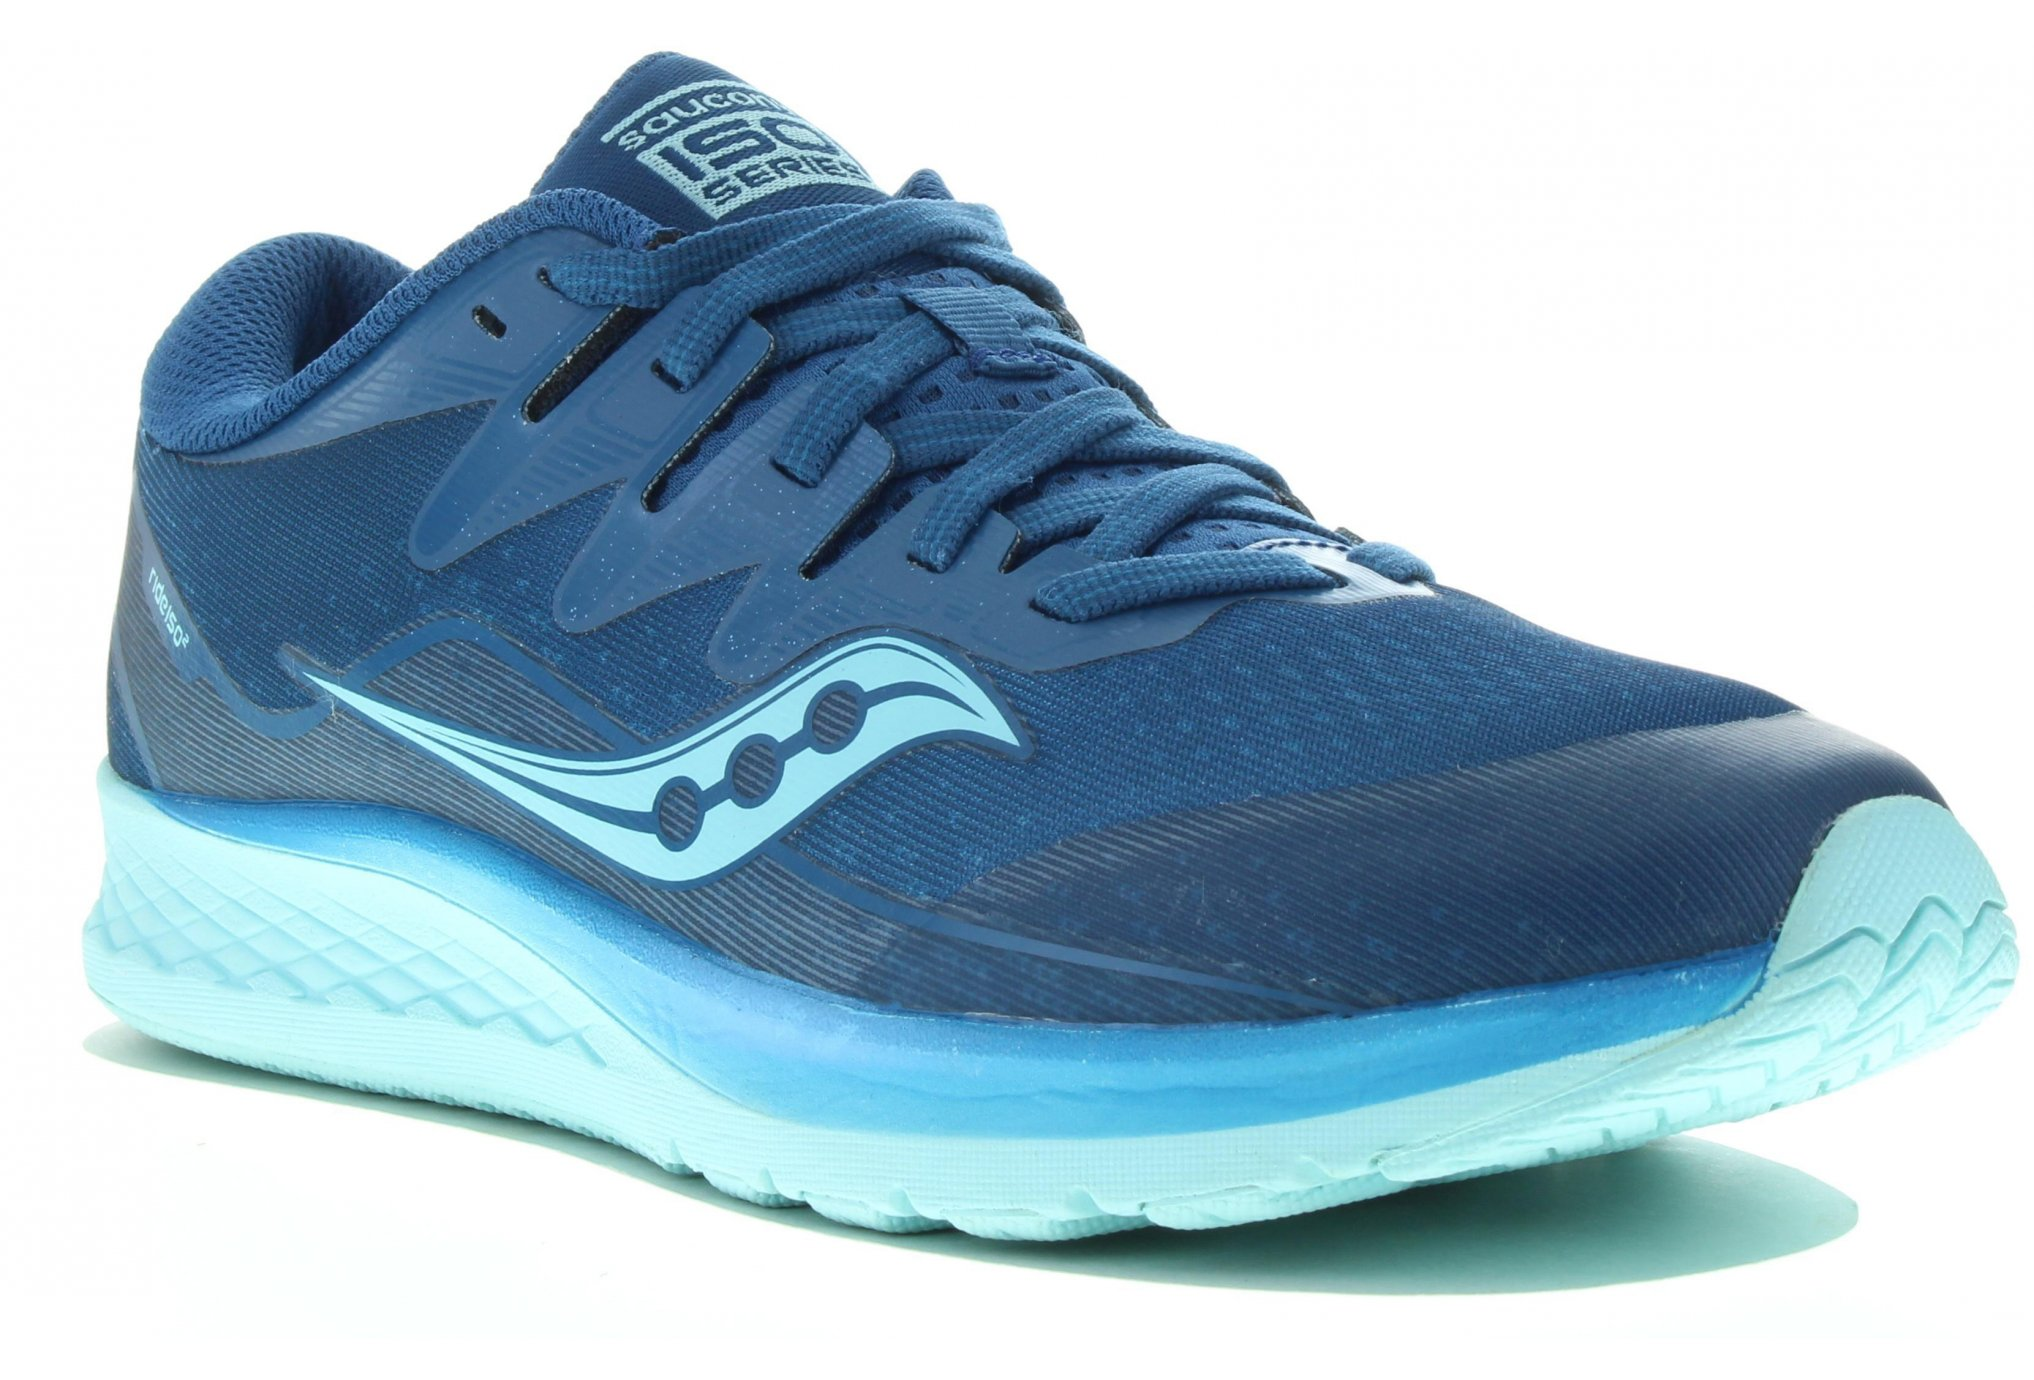 Saucony S-Ride ISO 2 Fille Chaussures running femme